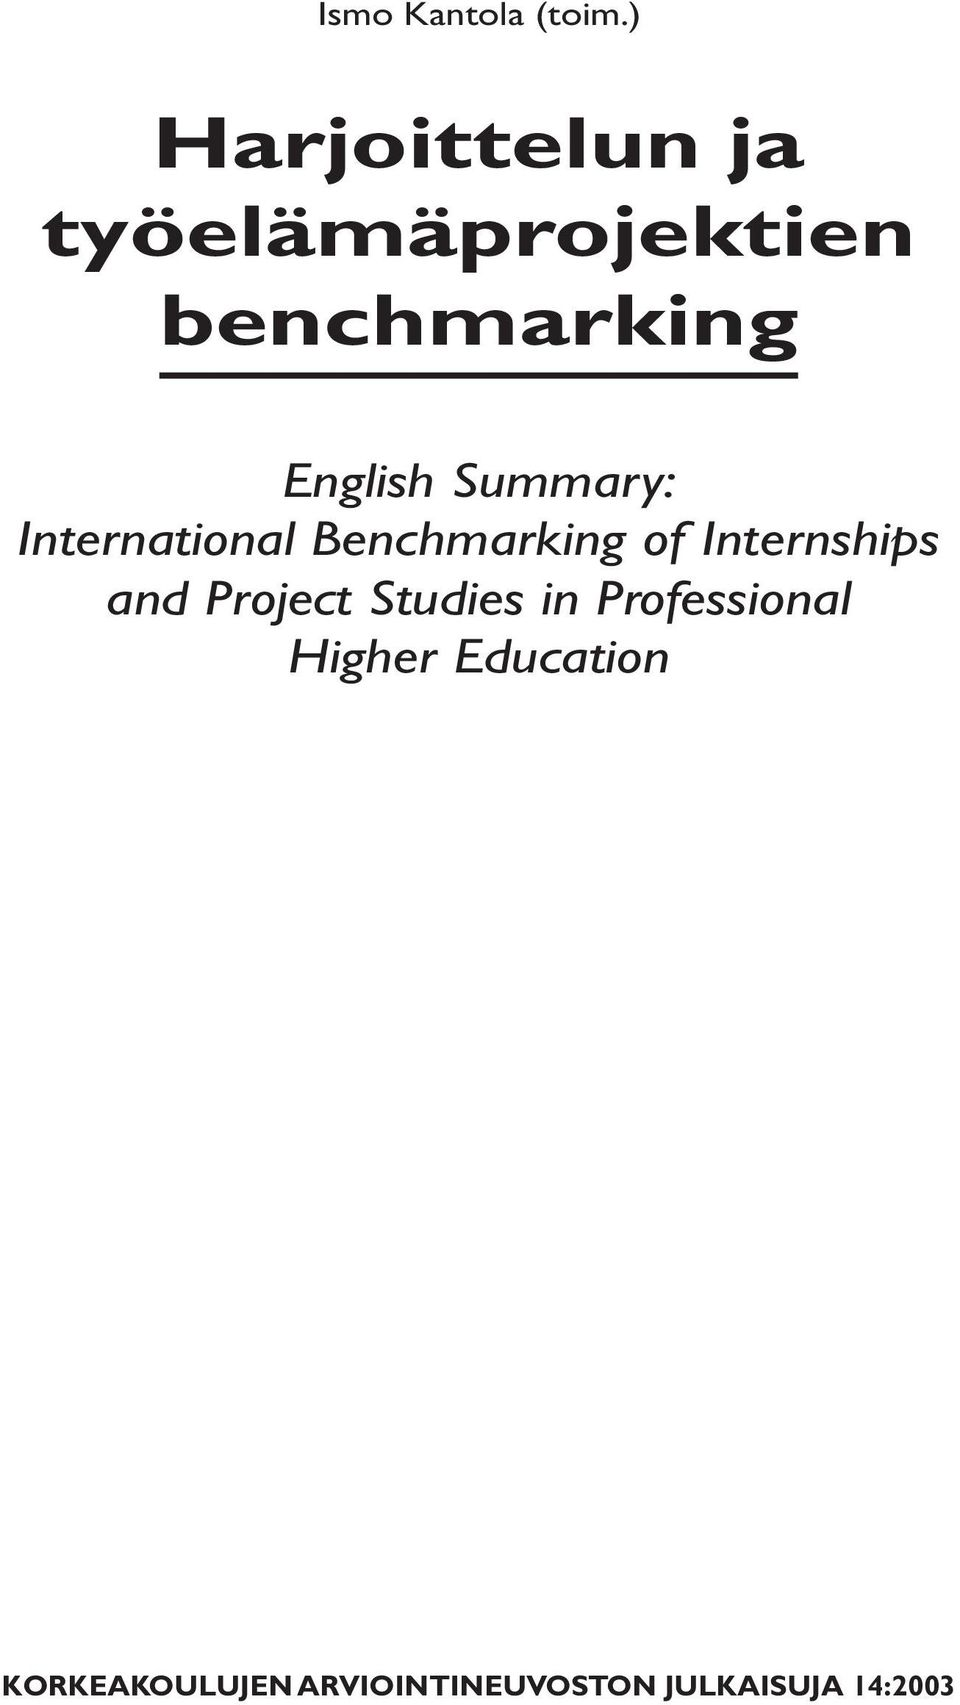 Summary: International Benchmarking of Internships and